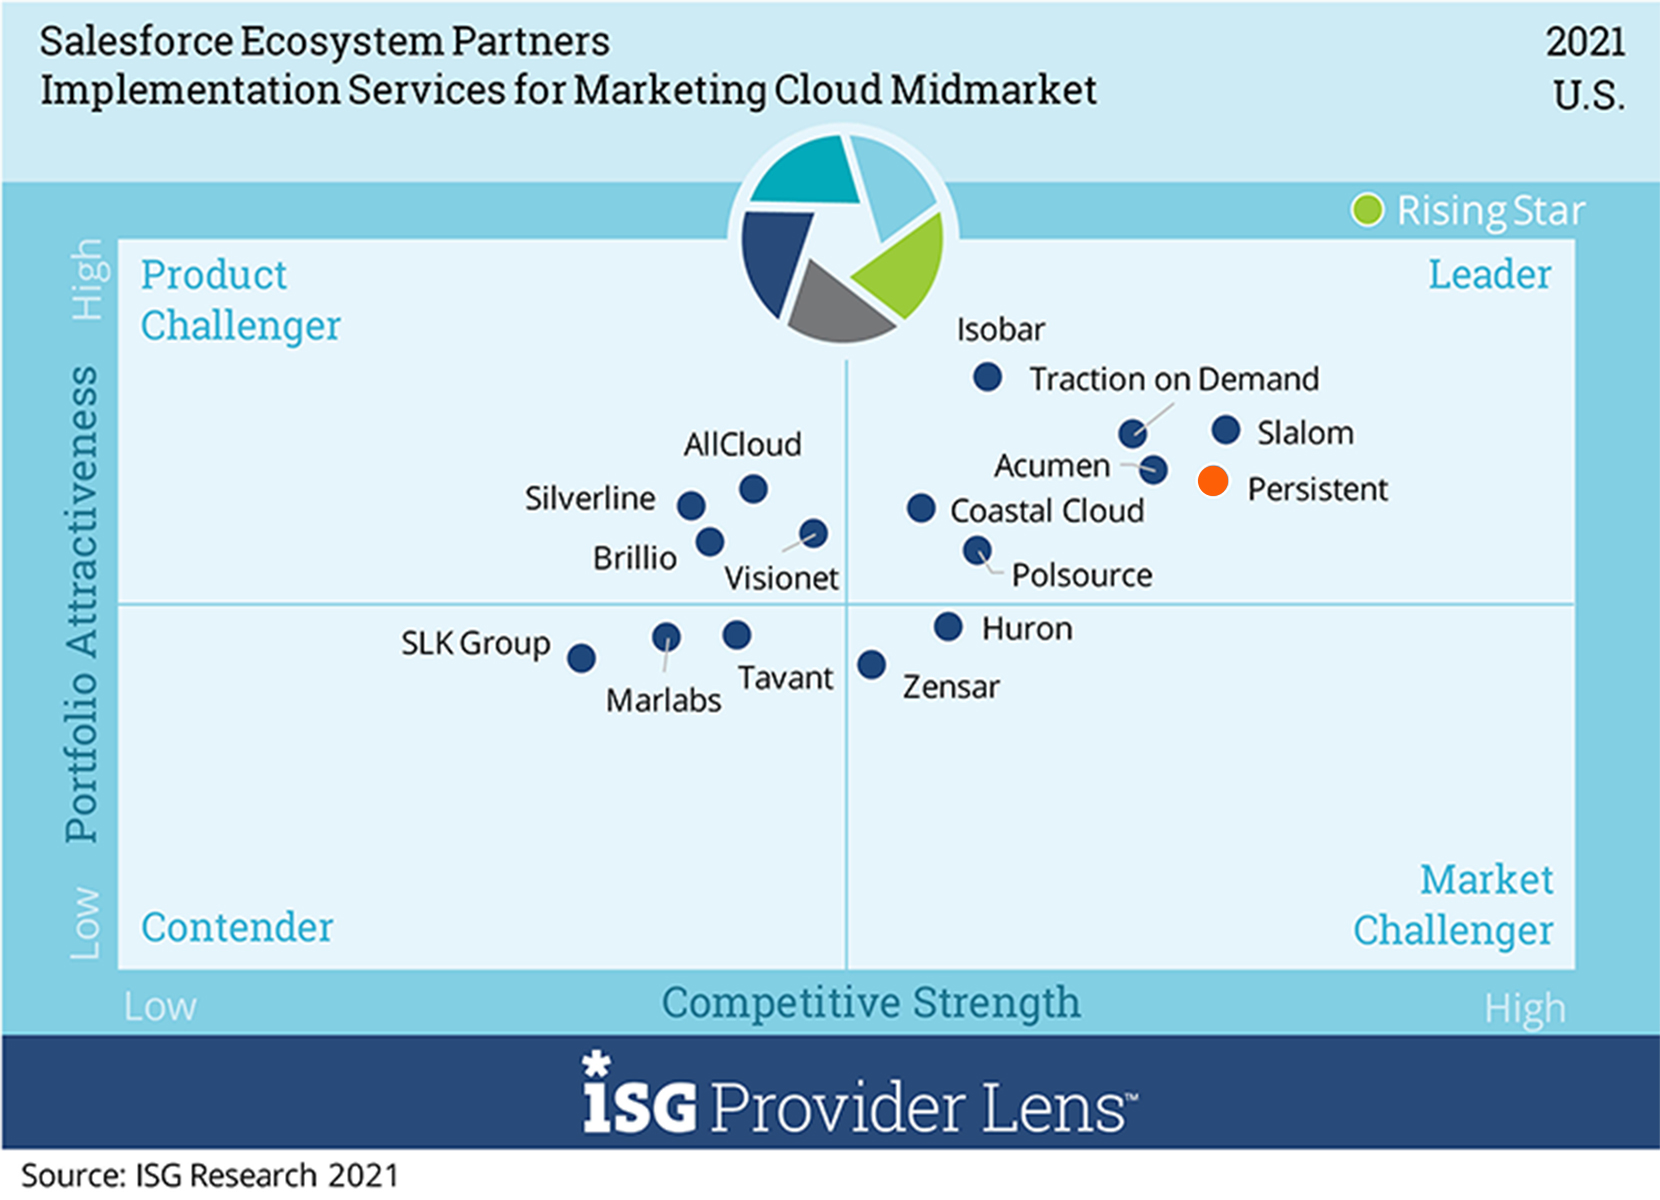 'Leader' in Implementation Services for Marketing Cloud – Midmarket in U.S. and Germany